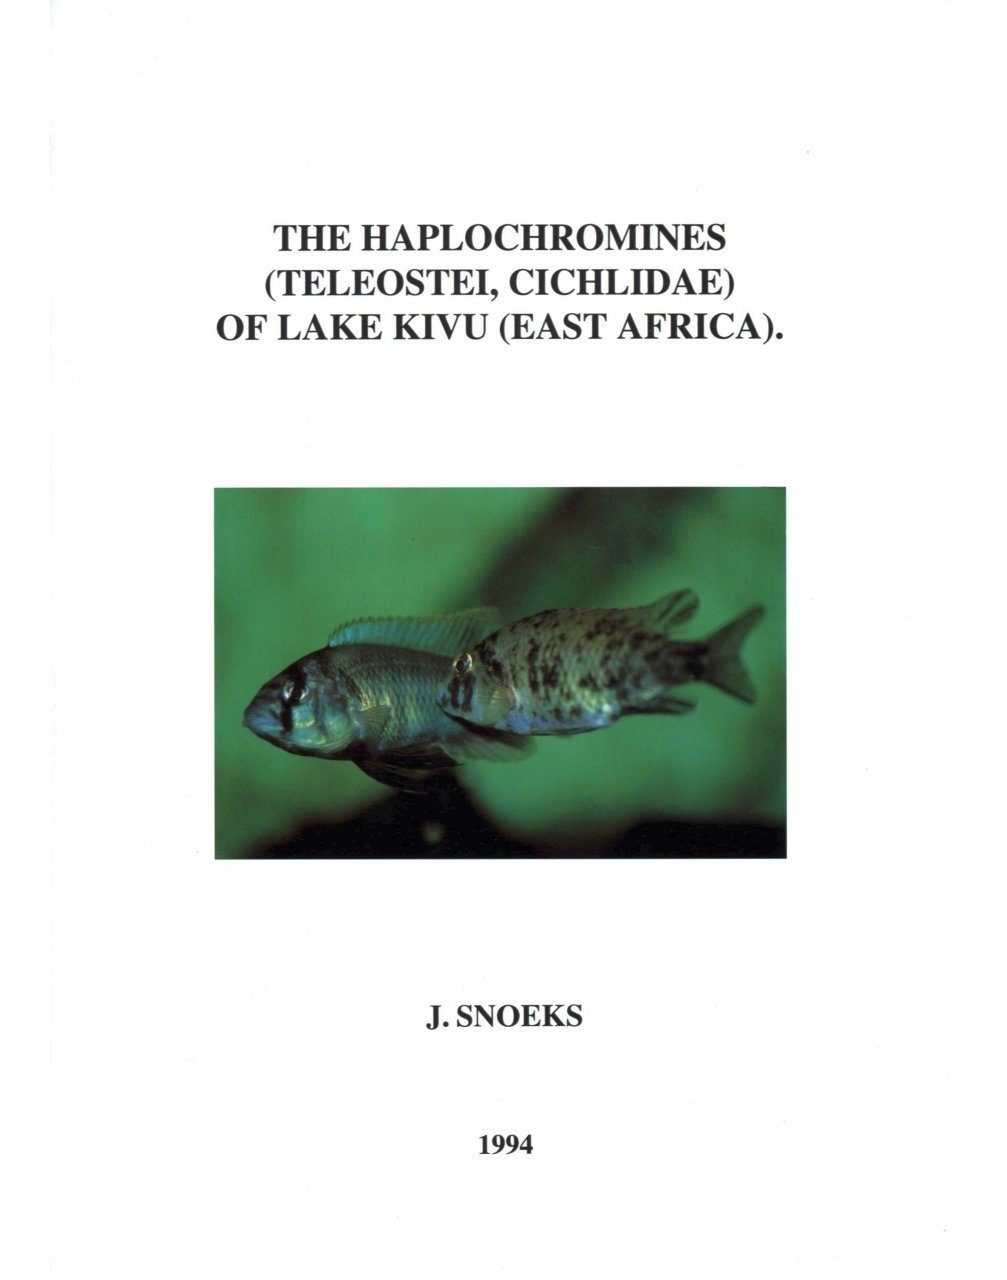 The Haplochromines (Teleostei, Cichlidae) of Lake Kivu (East Africa)